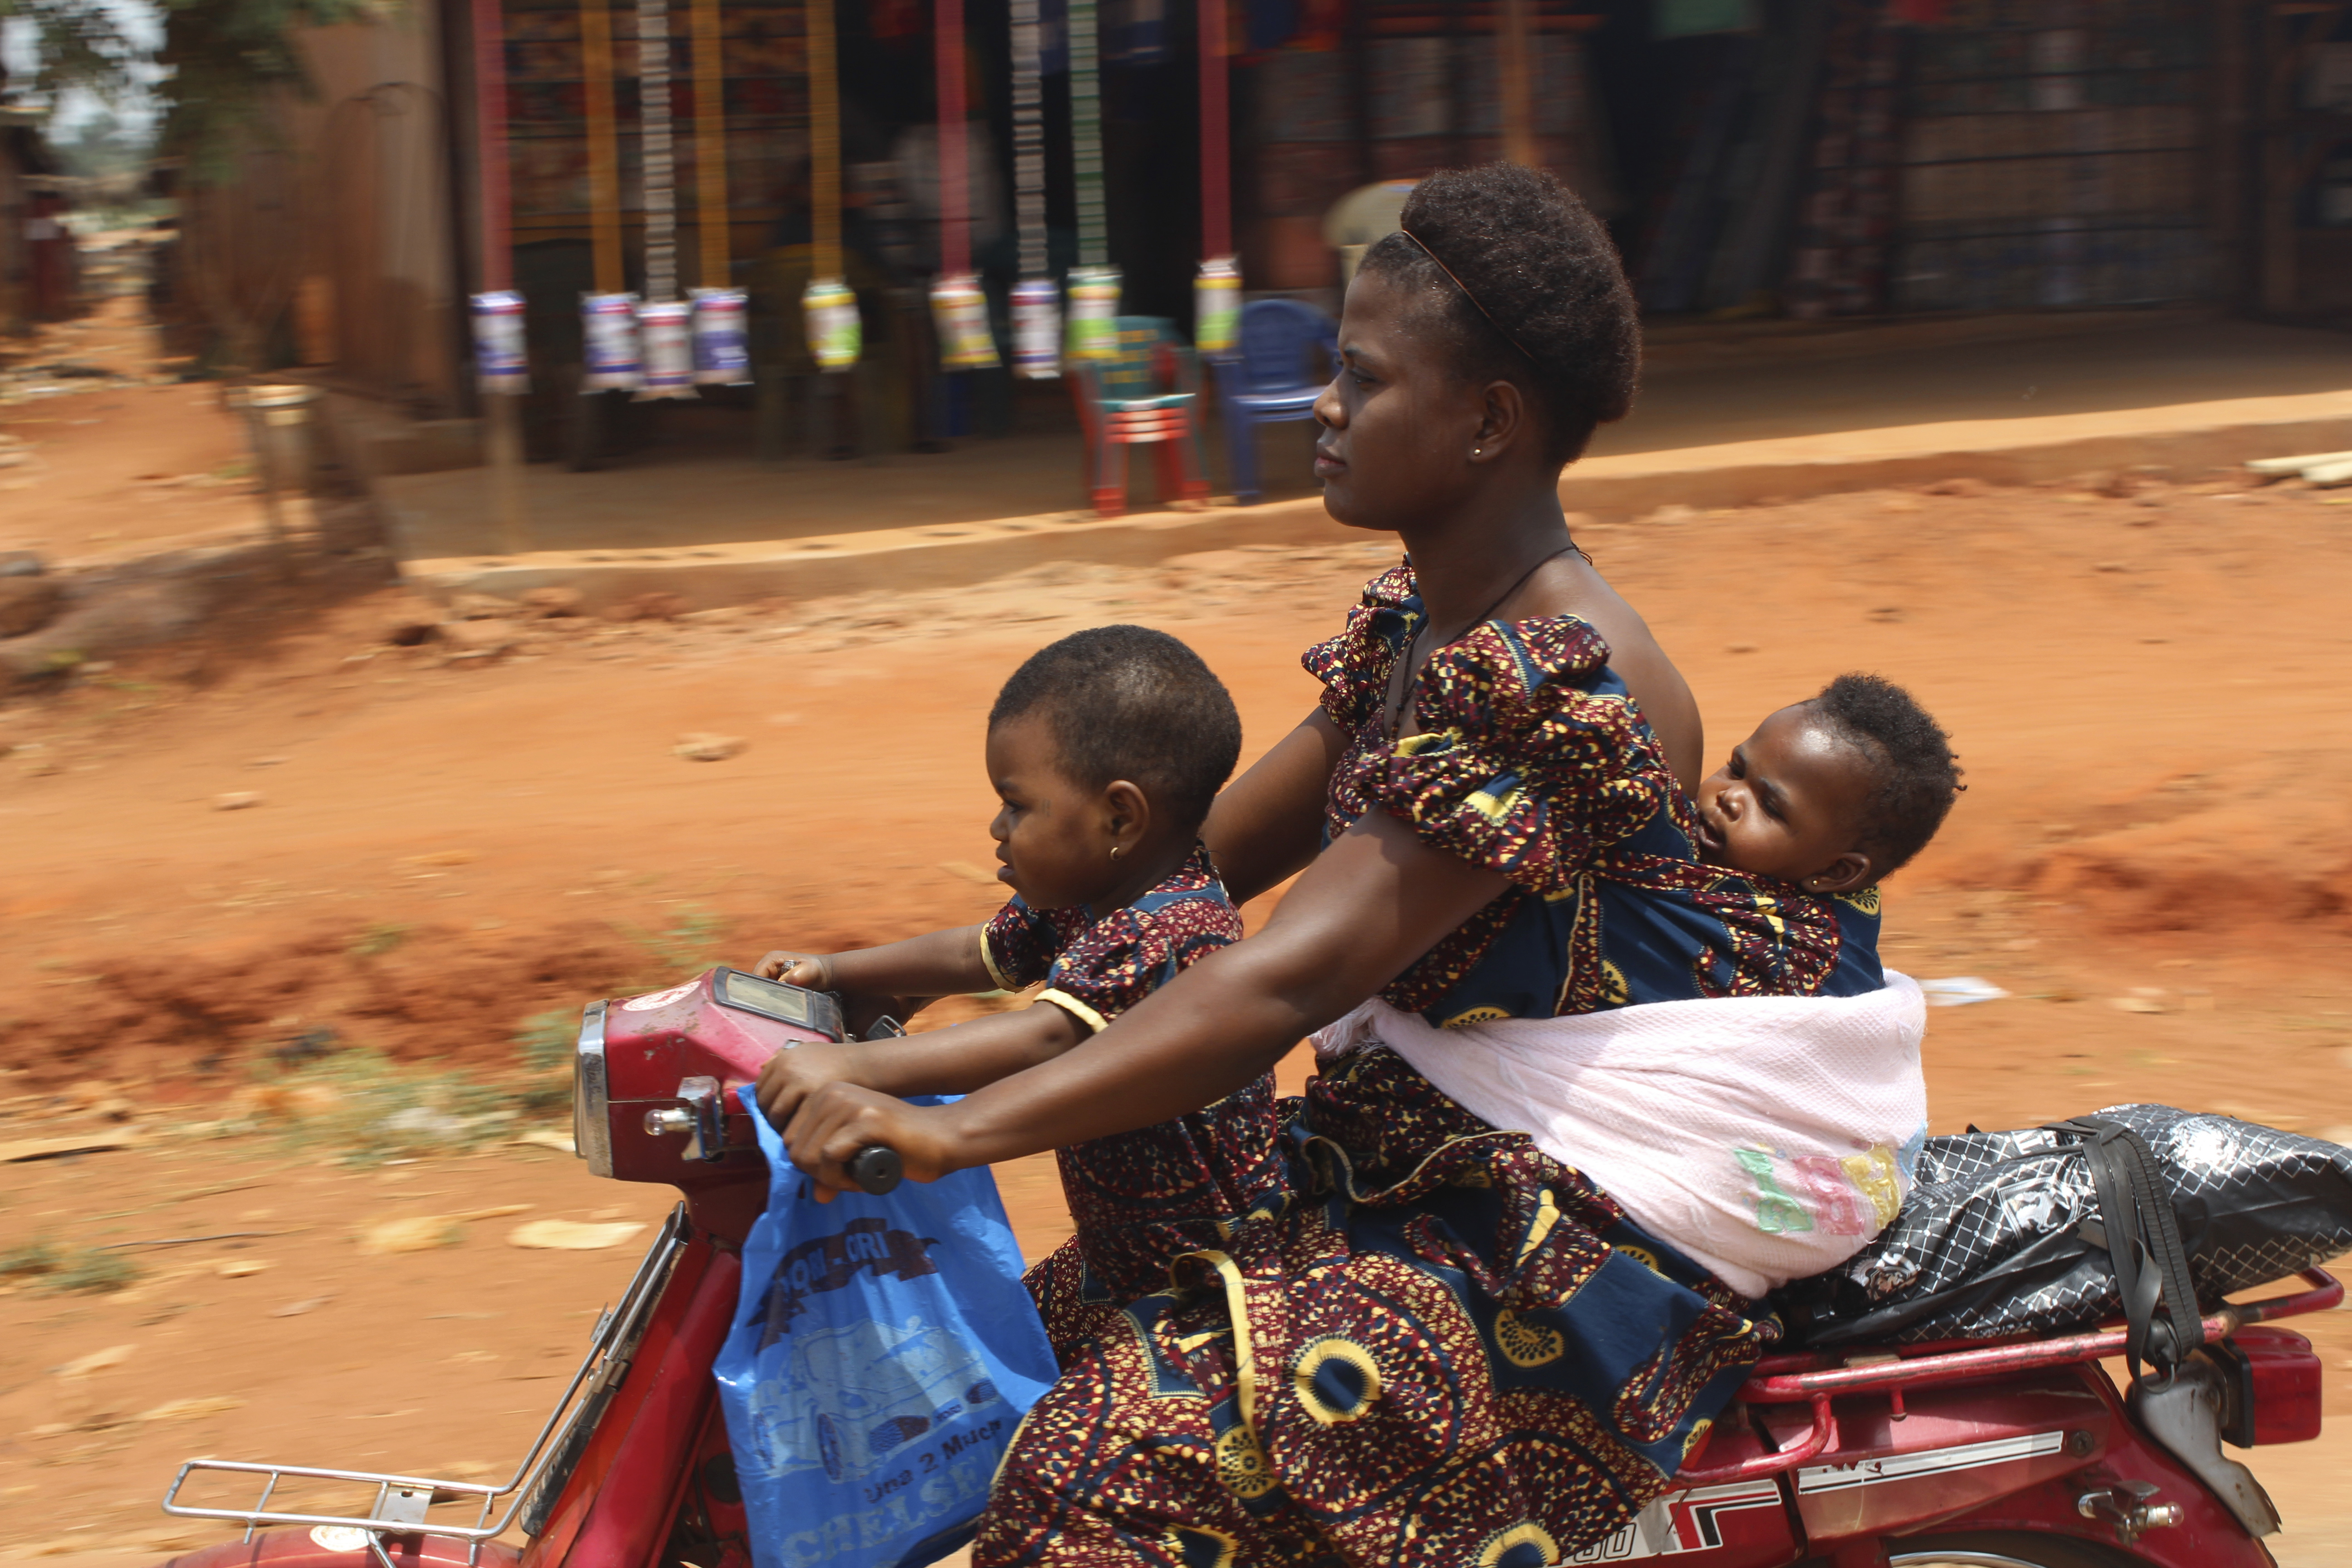 Igbo Mother & Her Baby Girls - Picture of The Year 2013